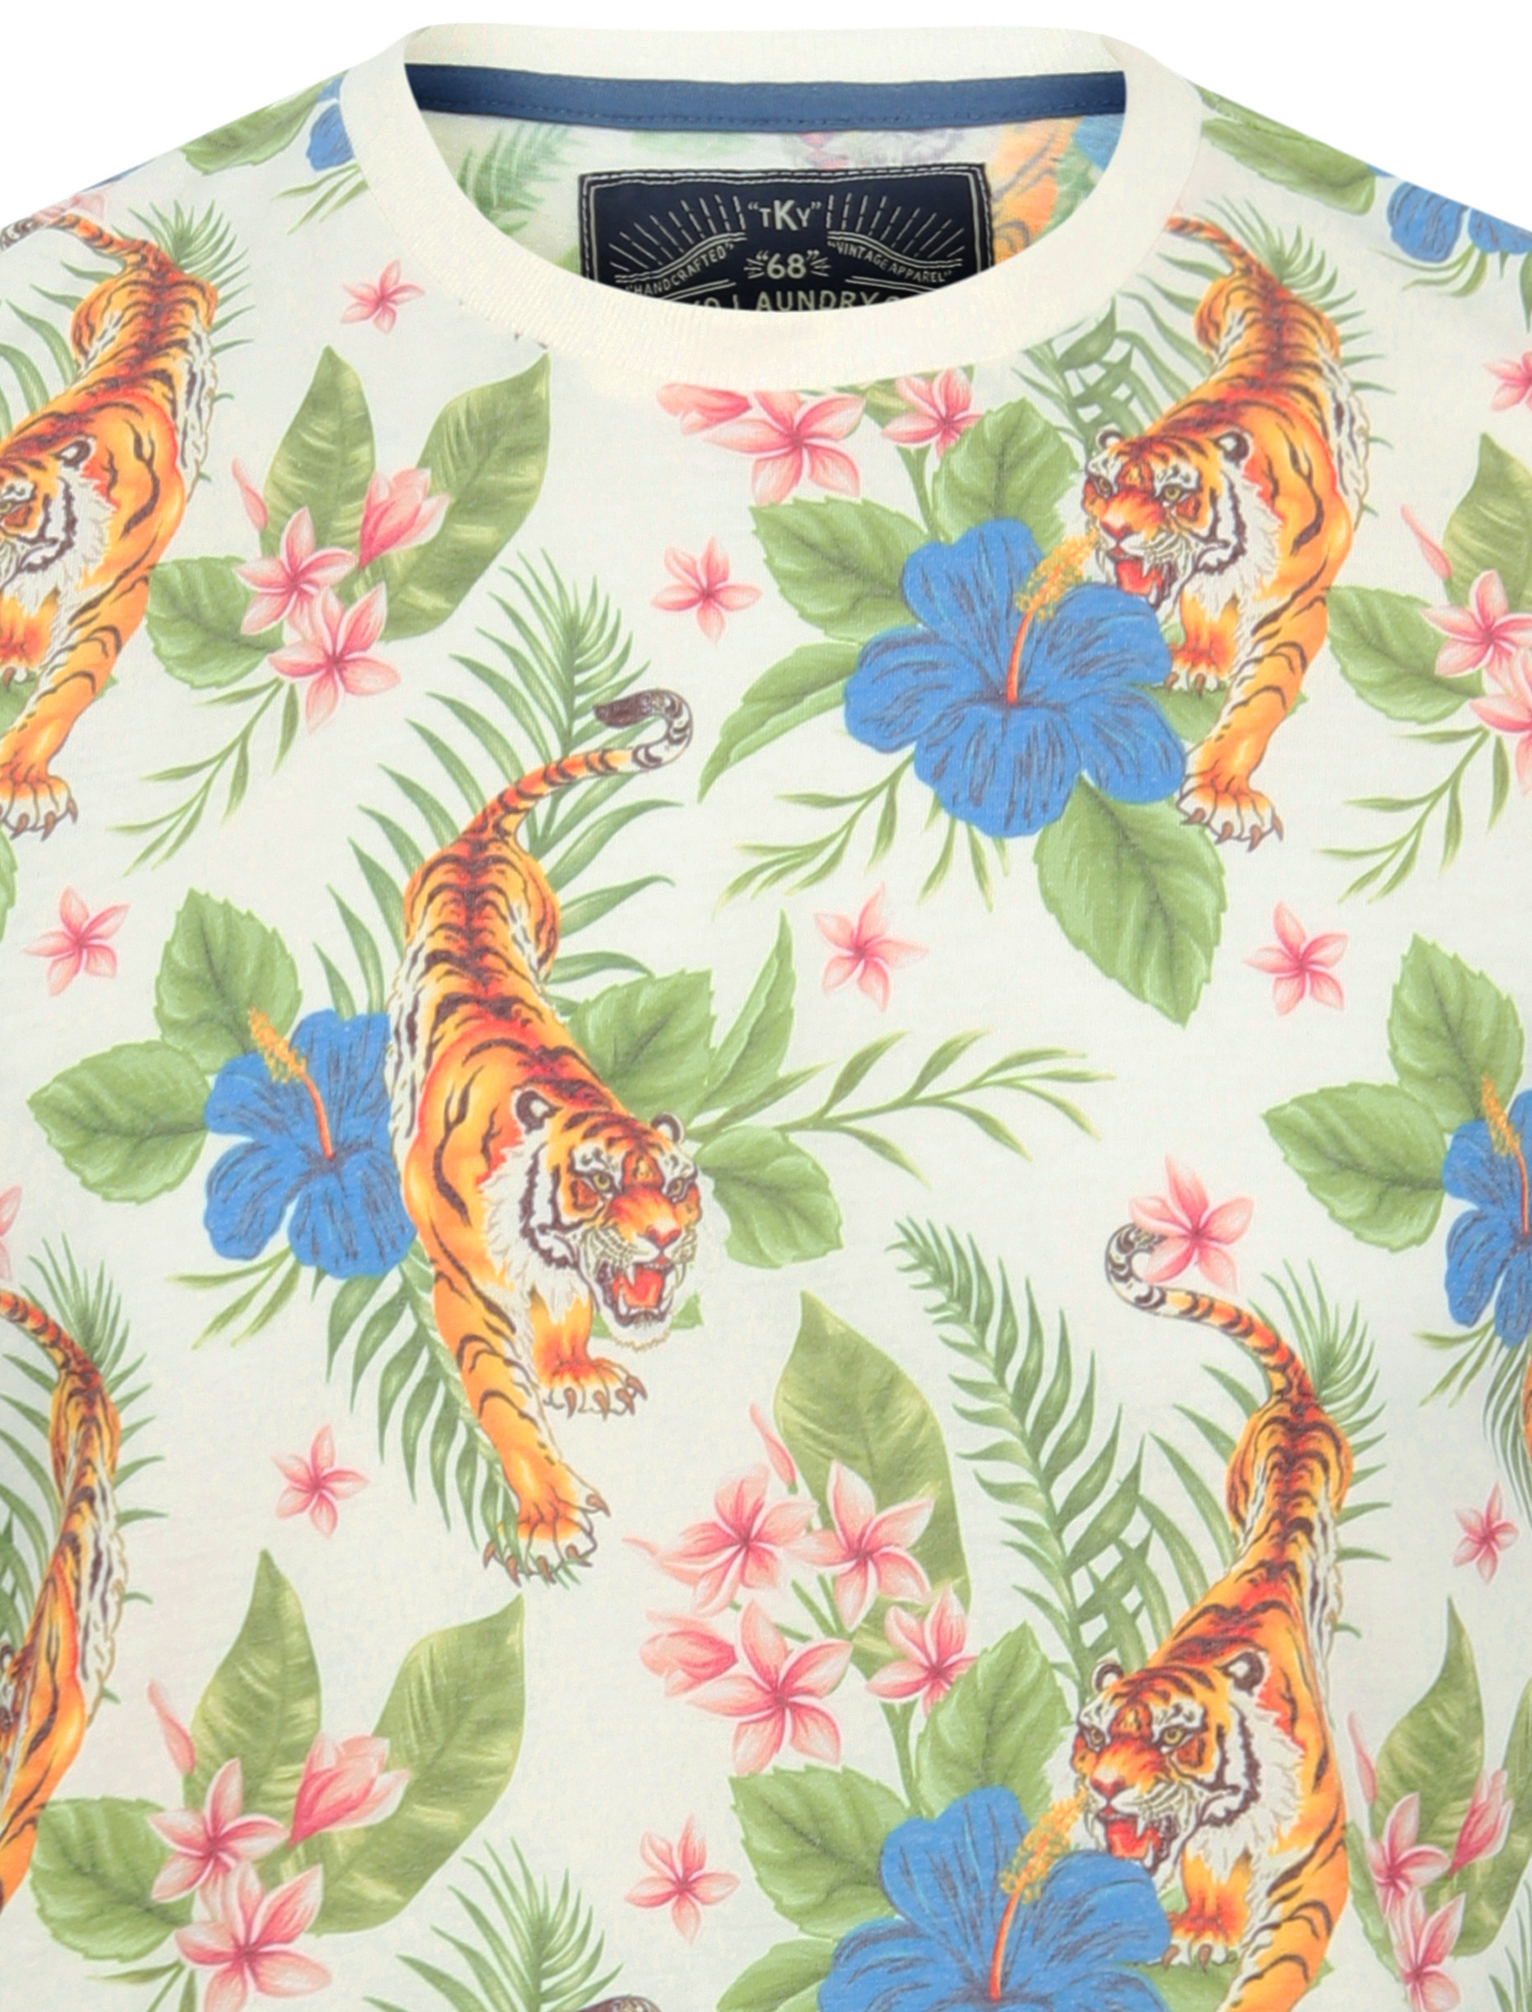 thumbnail 20 - Tokyo-Laundry-Tropical-Print-Crew-Neck-T-Shirt-Hawaiian-Floral-Summer-Holiday